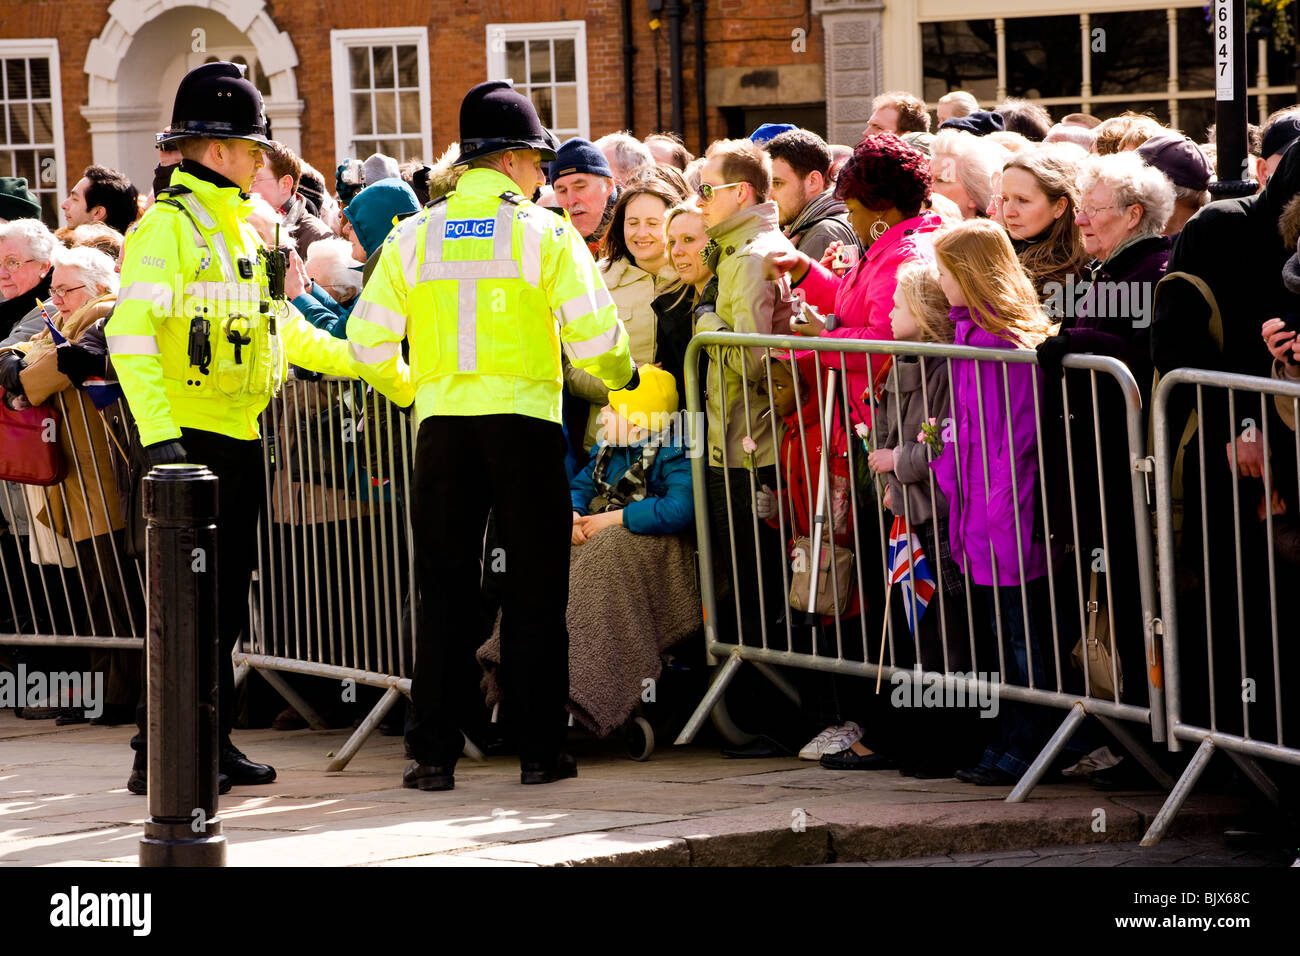 Police open crowd barrier at Derby Cathedral when the Queen is attending Maundy Ceremony so a disabled can child - Stock Image